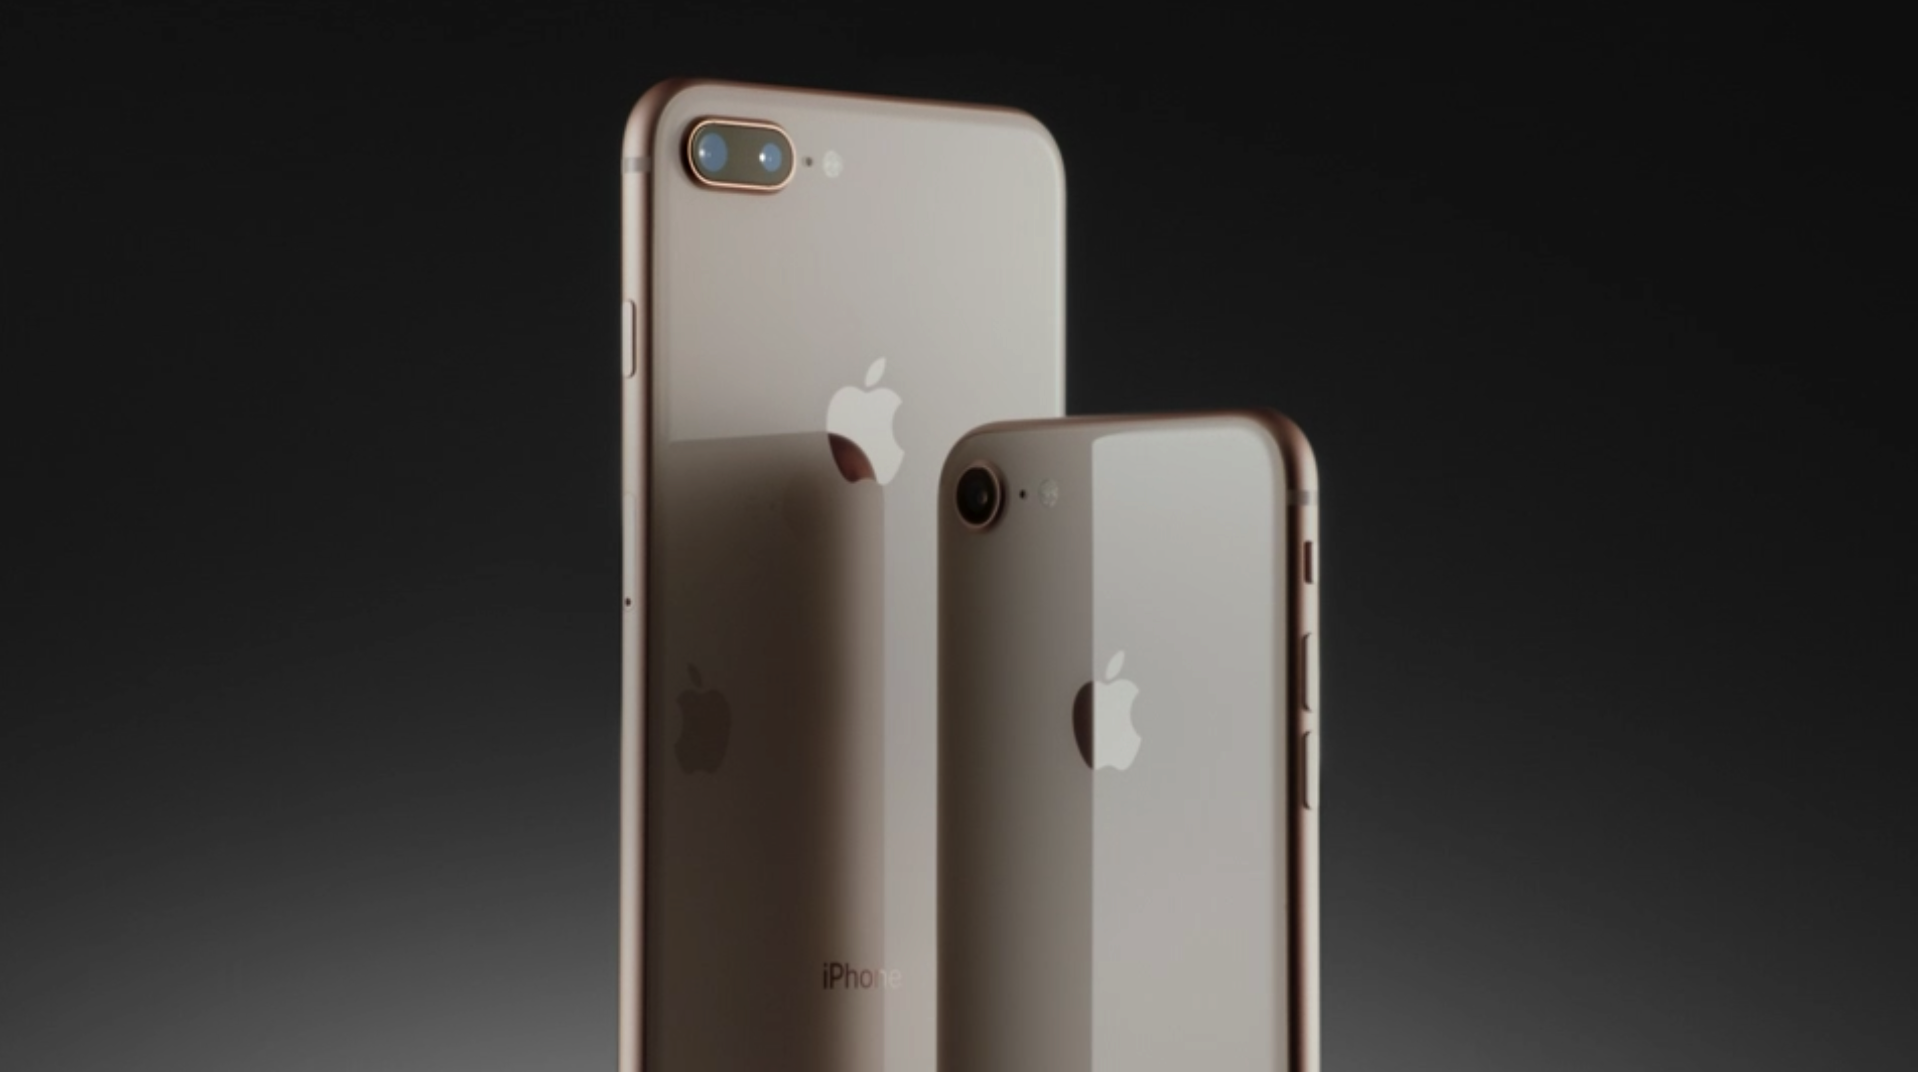 The new iPhone 8 and 8 Plus in the new blush gold color